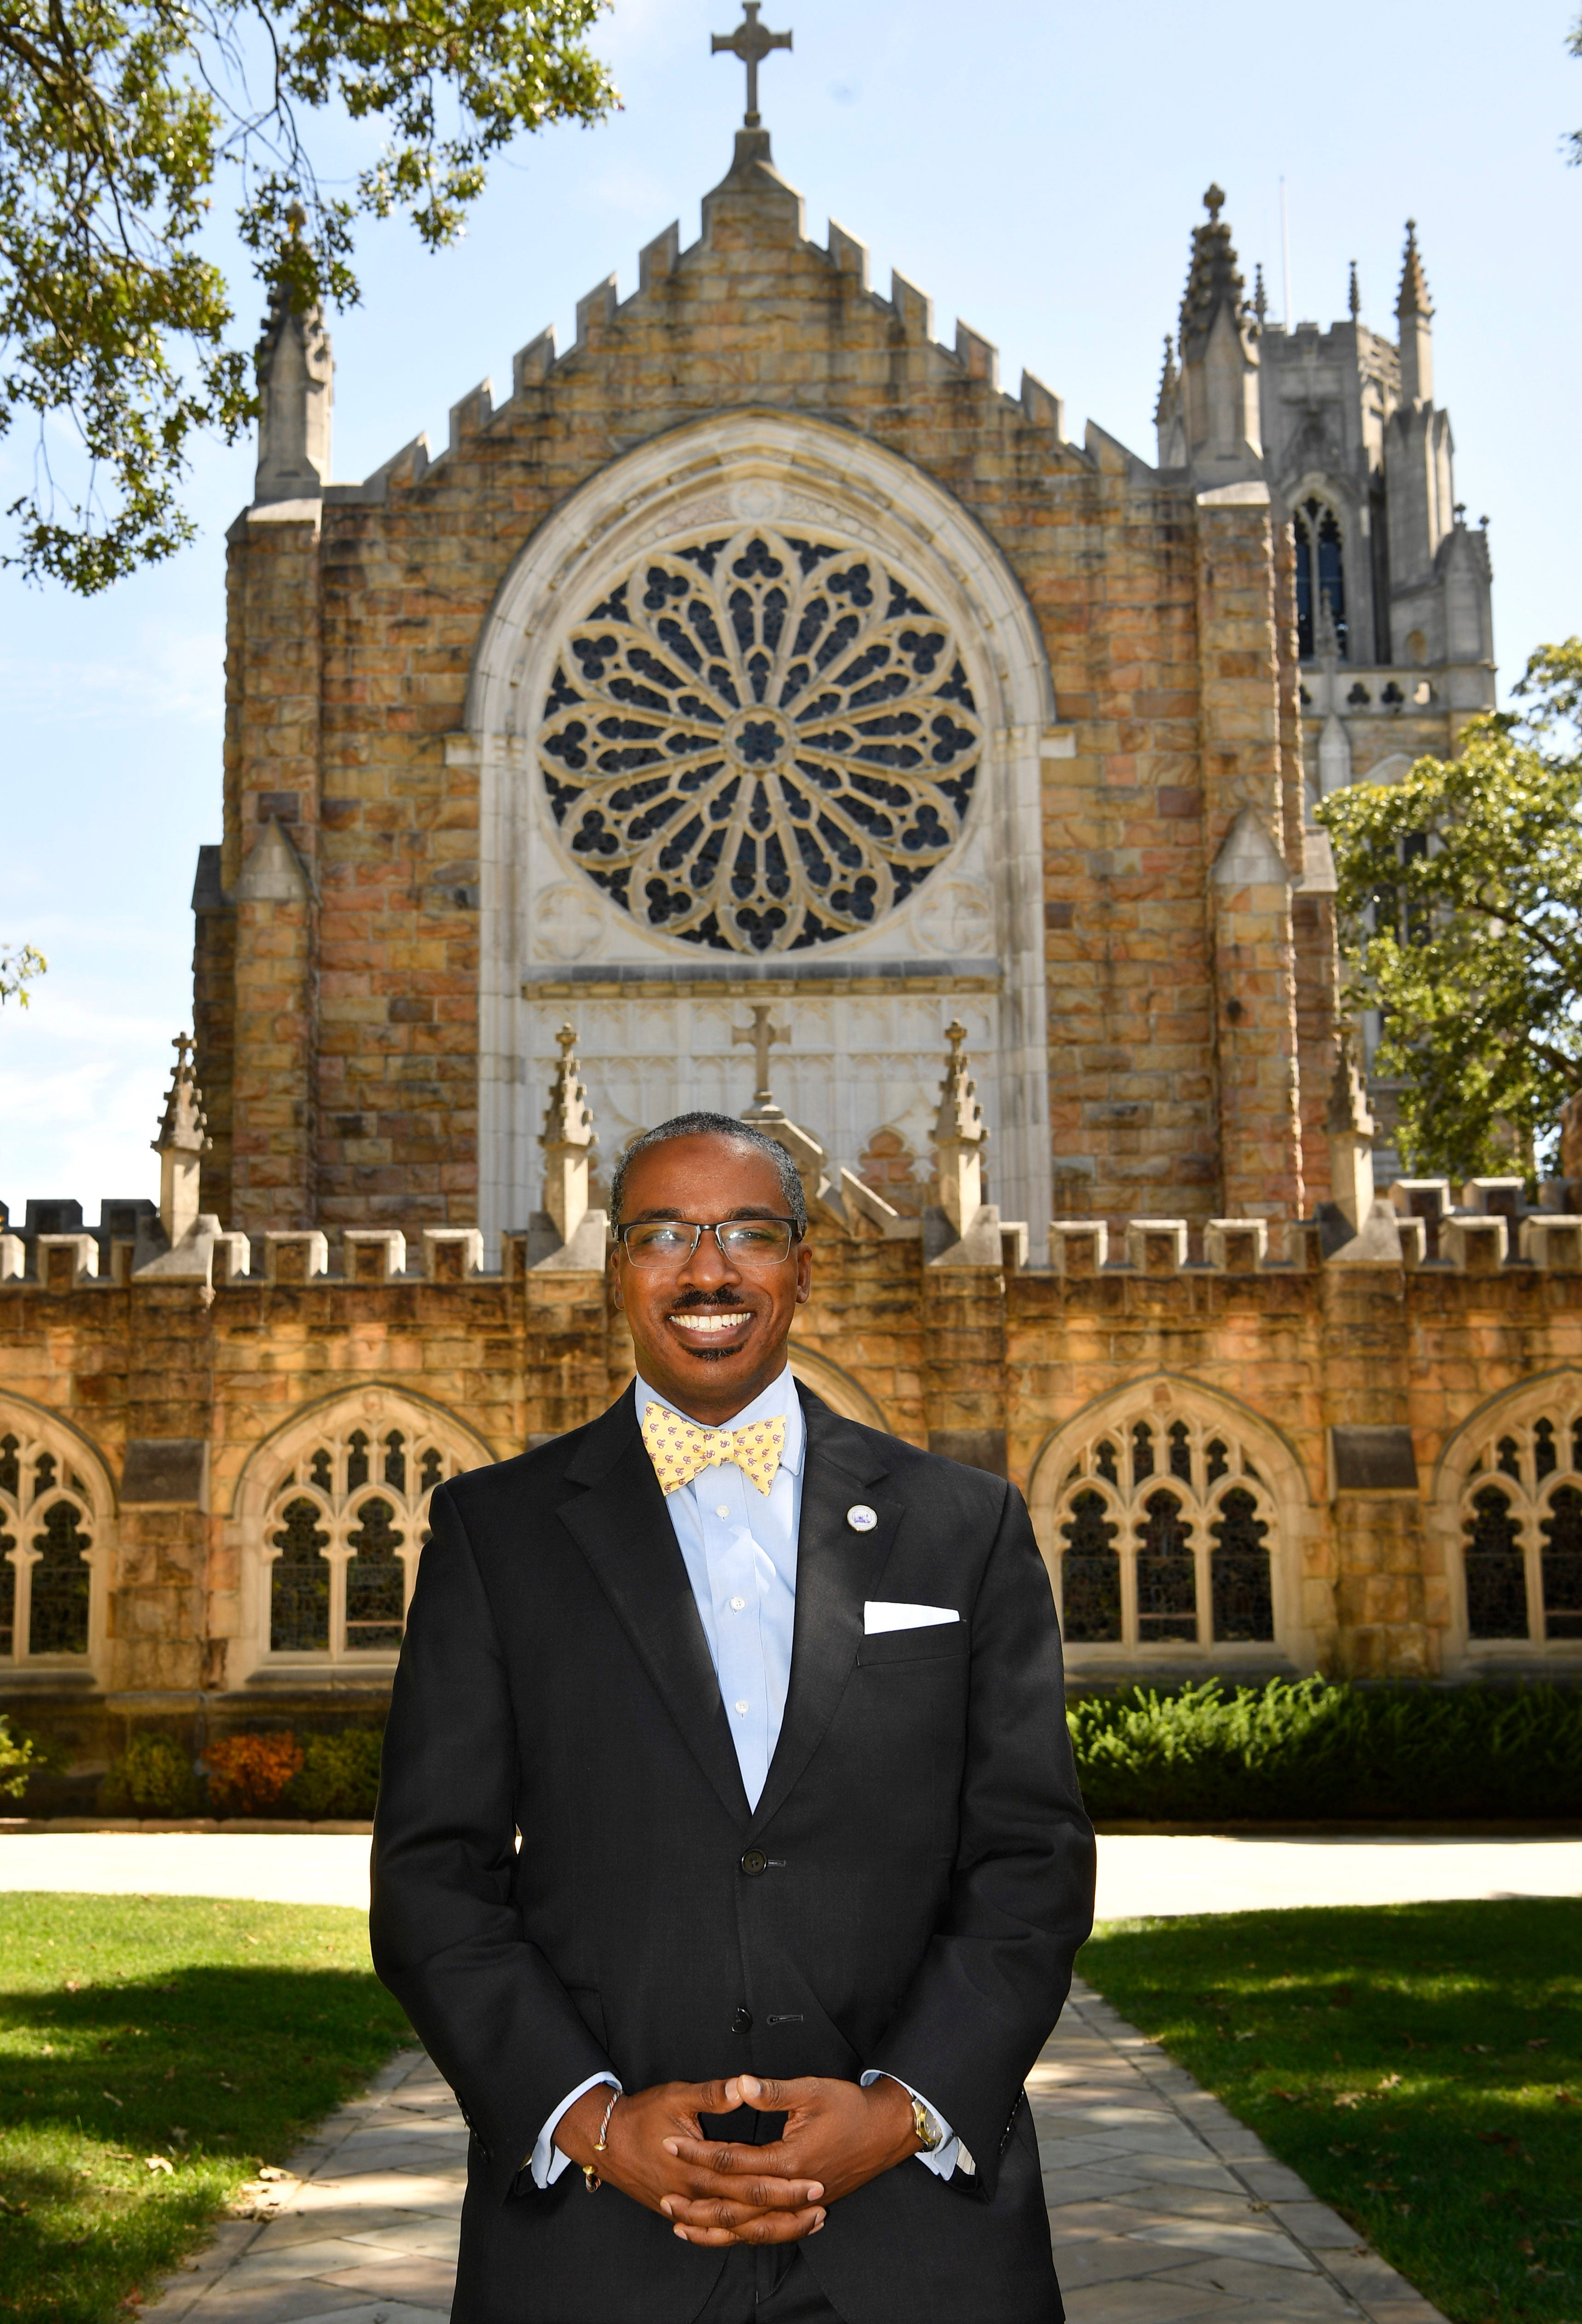 President and Vice-Chancellor Reuben E. Brigety II is the first African American to serve in that post. He stands in front of All Saints Chapel at The University of the South in Sewanee, Tenn. Tuesday, Sept. 22, 2020.